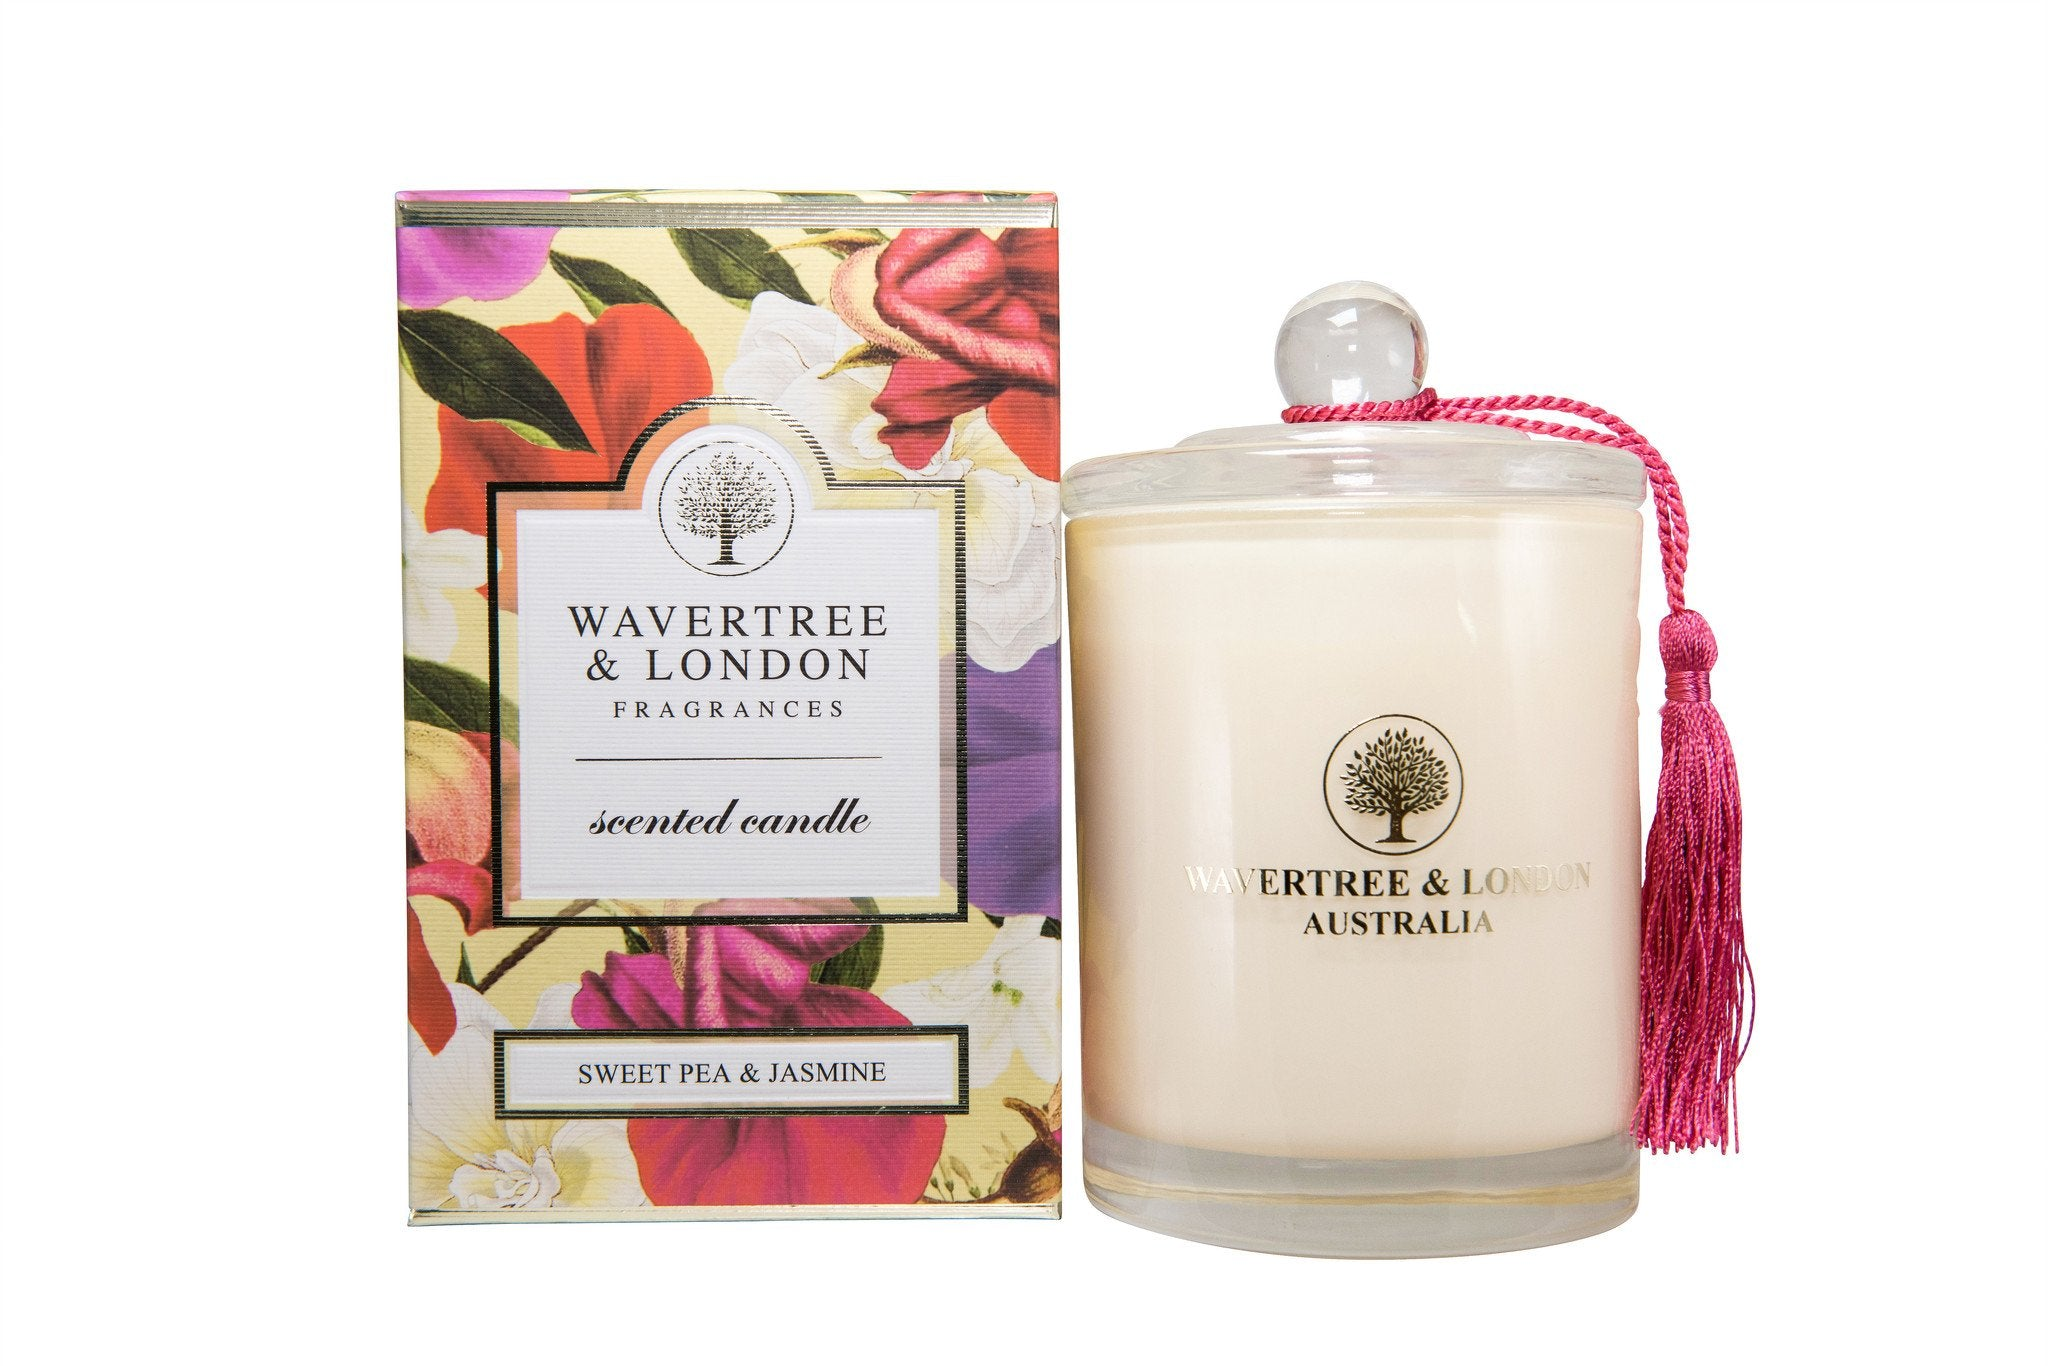 Sweet Pea and Jasmine Scented Candle